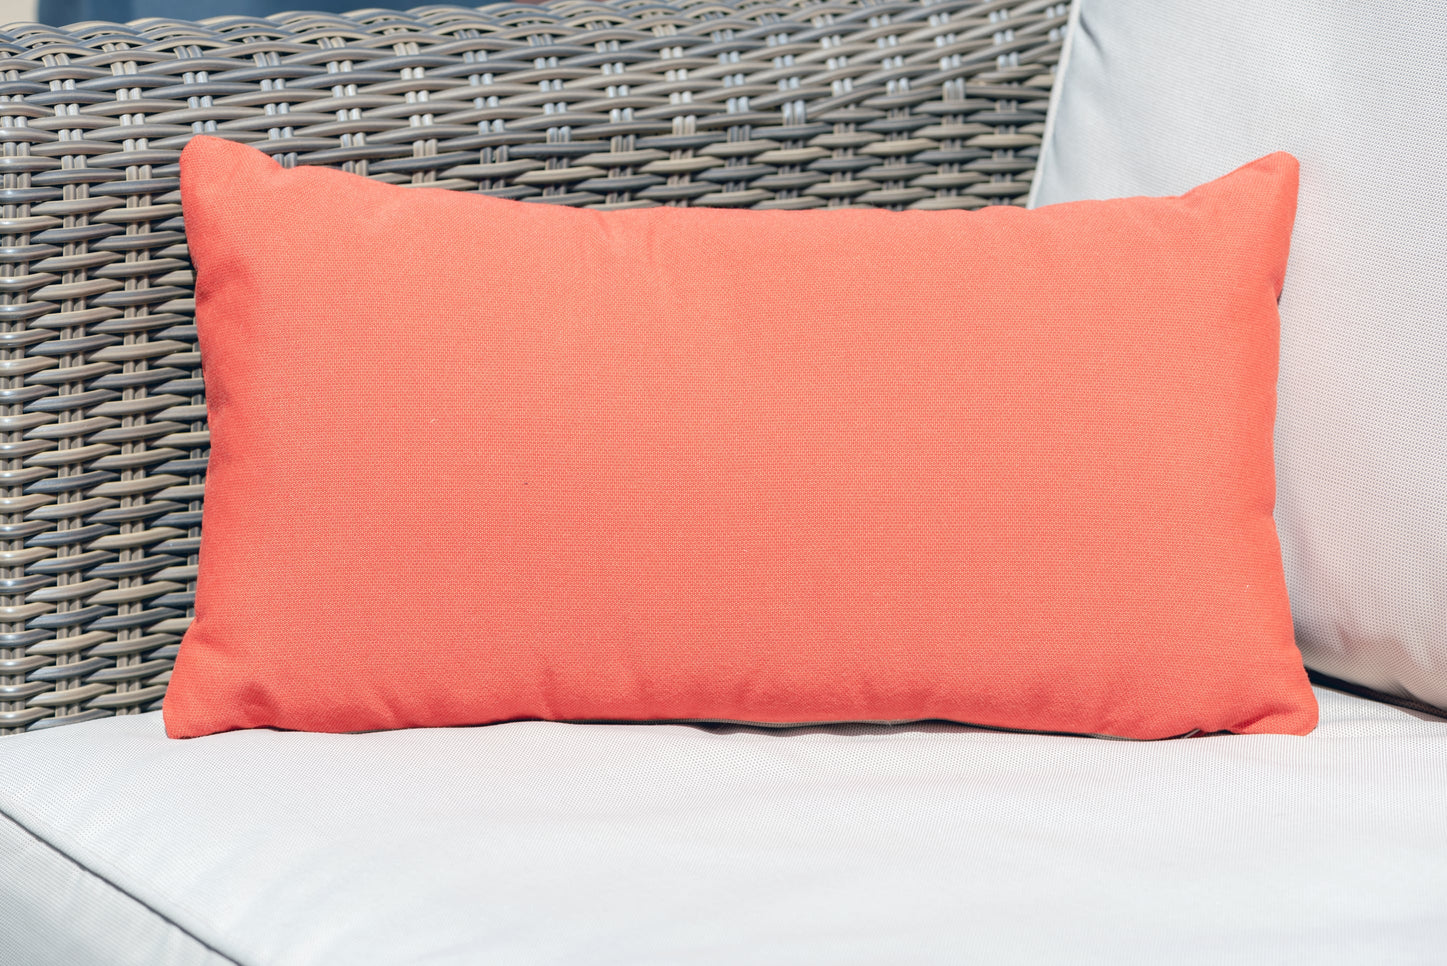 Luxury Cushion in Paprika